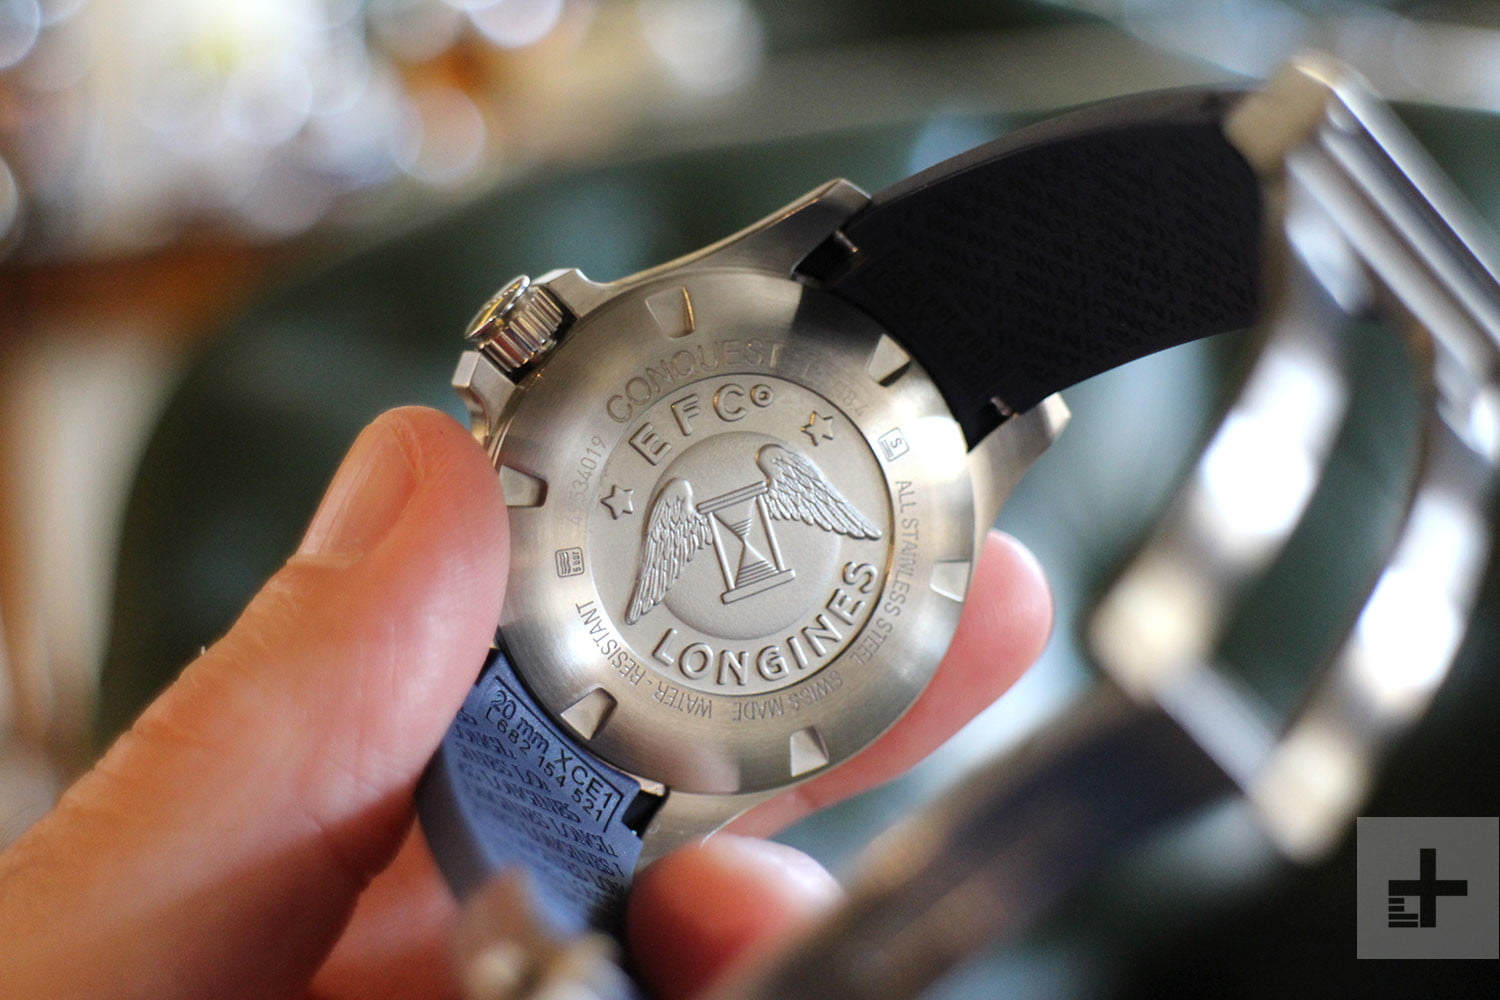 Longines' New Watch Uses The Flash On Your Phone To Transfer Data